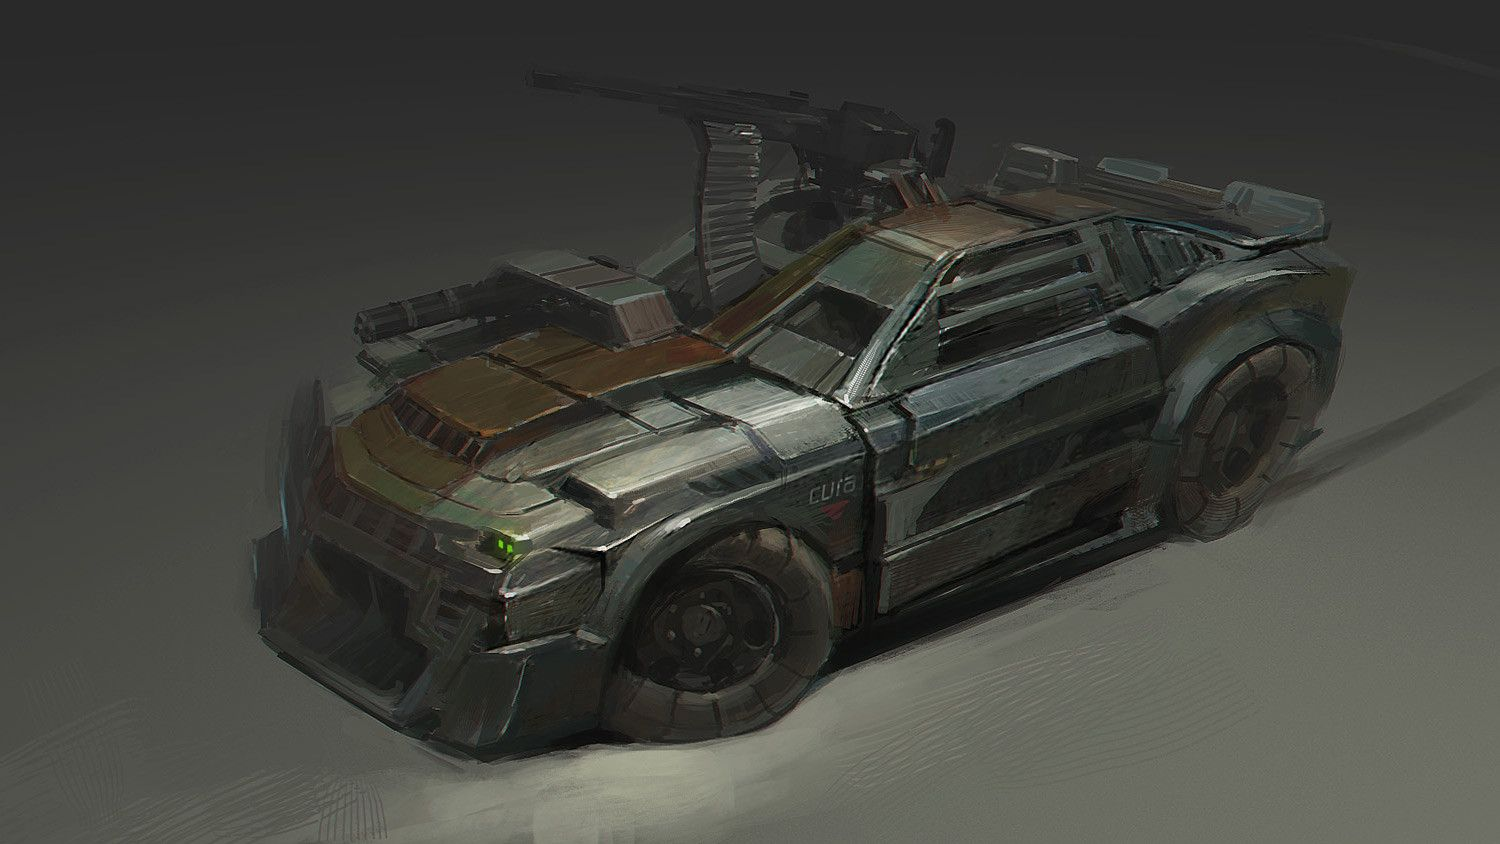 Apocalyptic Vehicle Stuart Kim On Artstation At Https Www